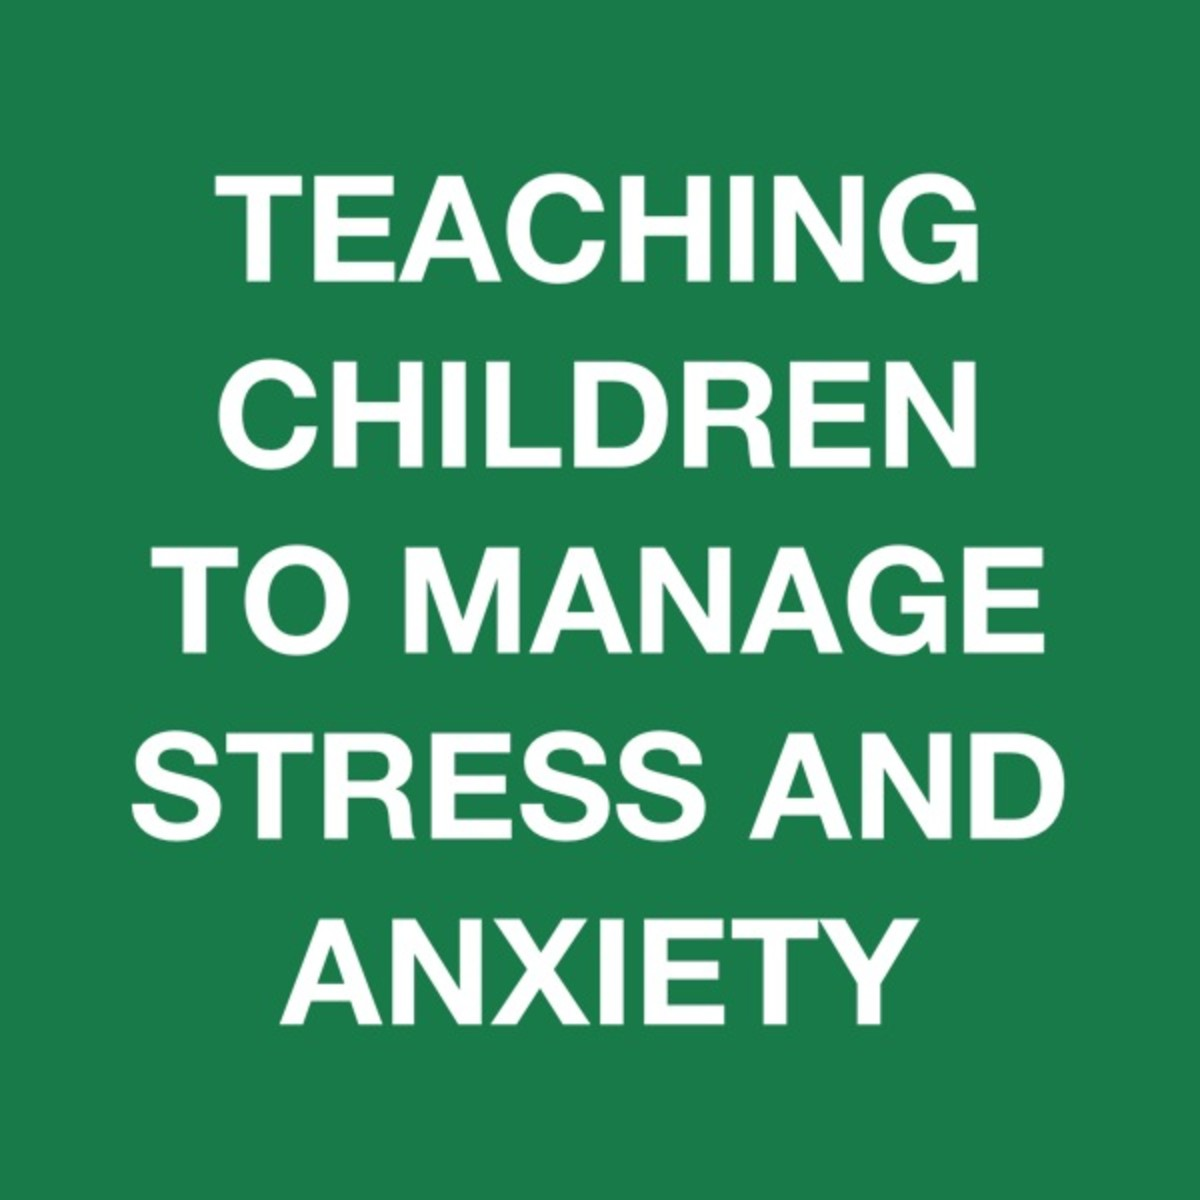 Teaching Children to Manage Stress and Anxiety